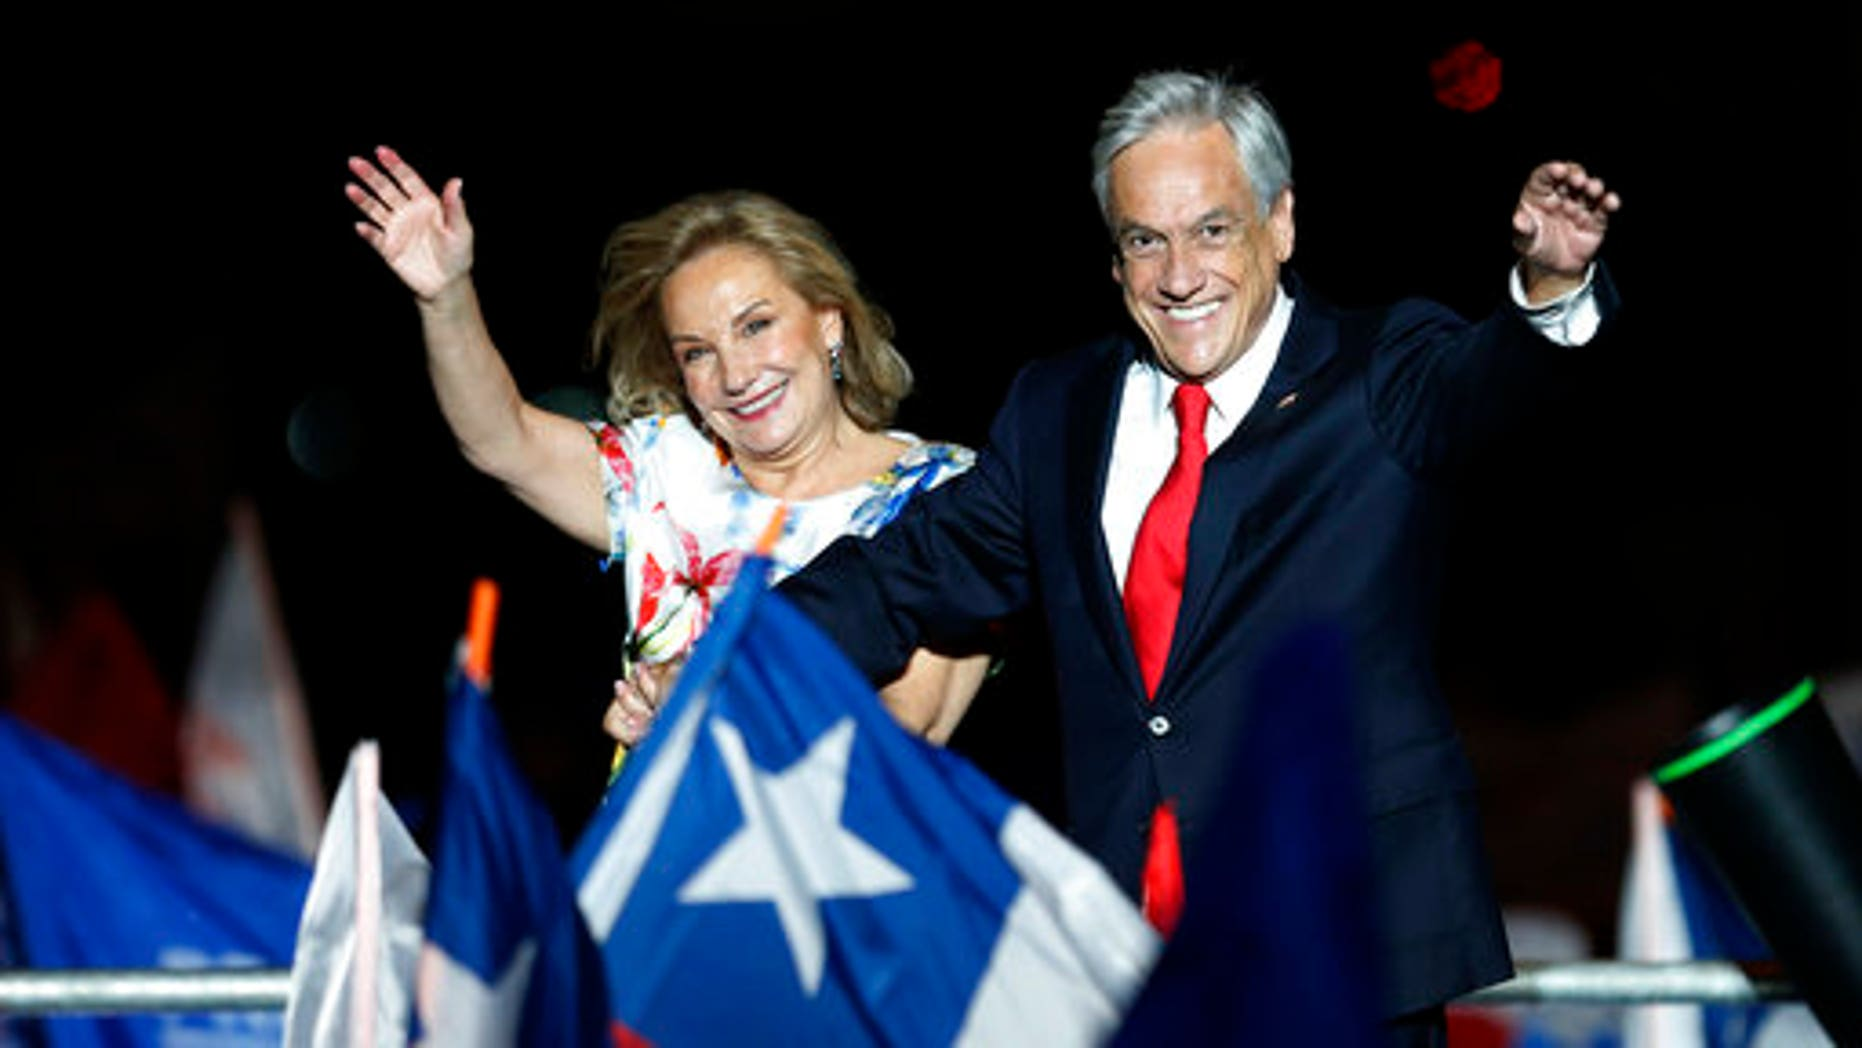 Chile's former President Sebastian Pinera and his wife Cecilia Morel wave to supporters as they celebrate Pinera's winning the presidential election runoff in Santiago, Chile.